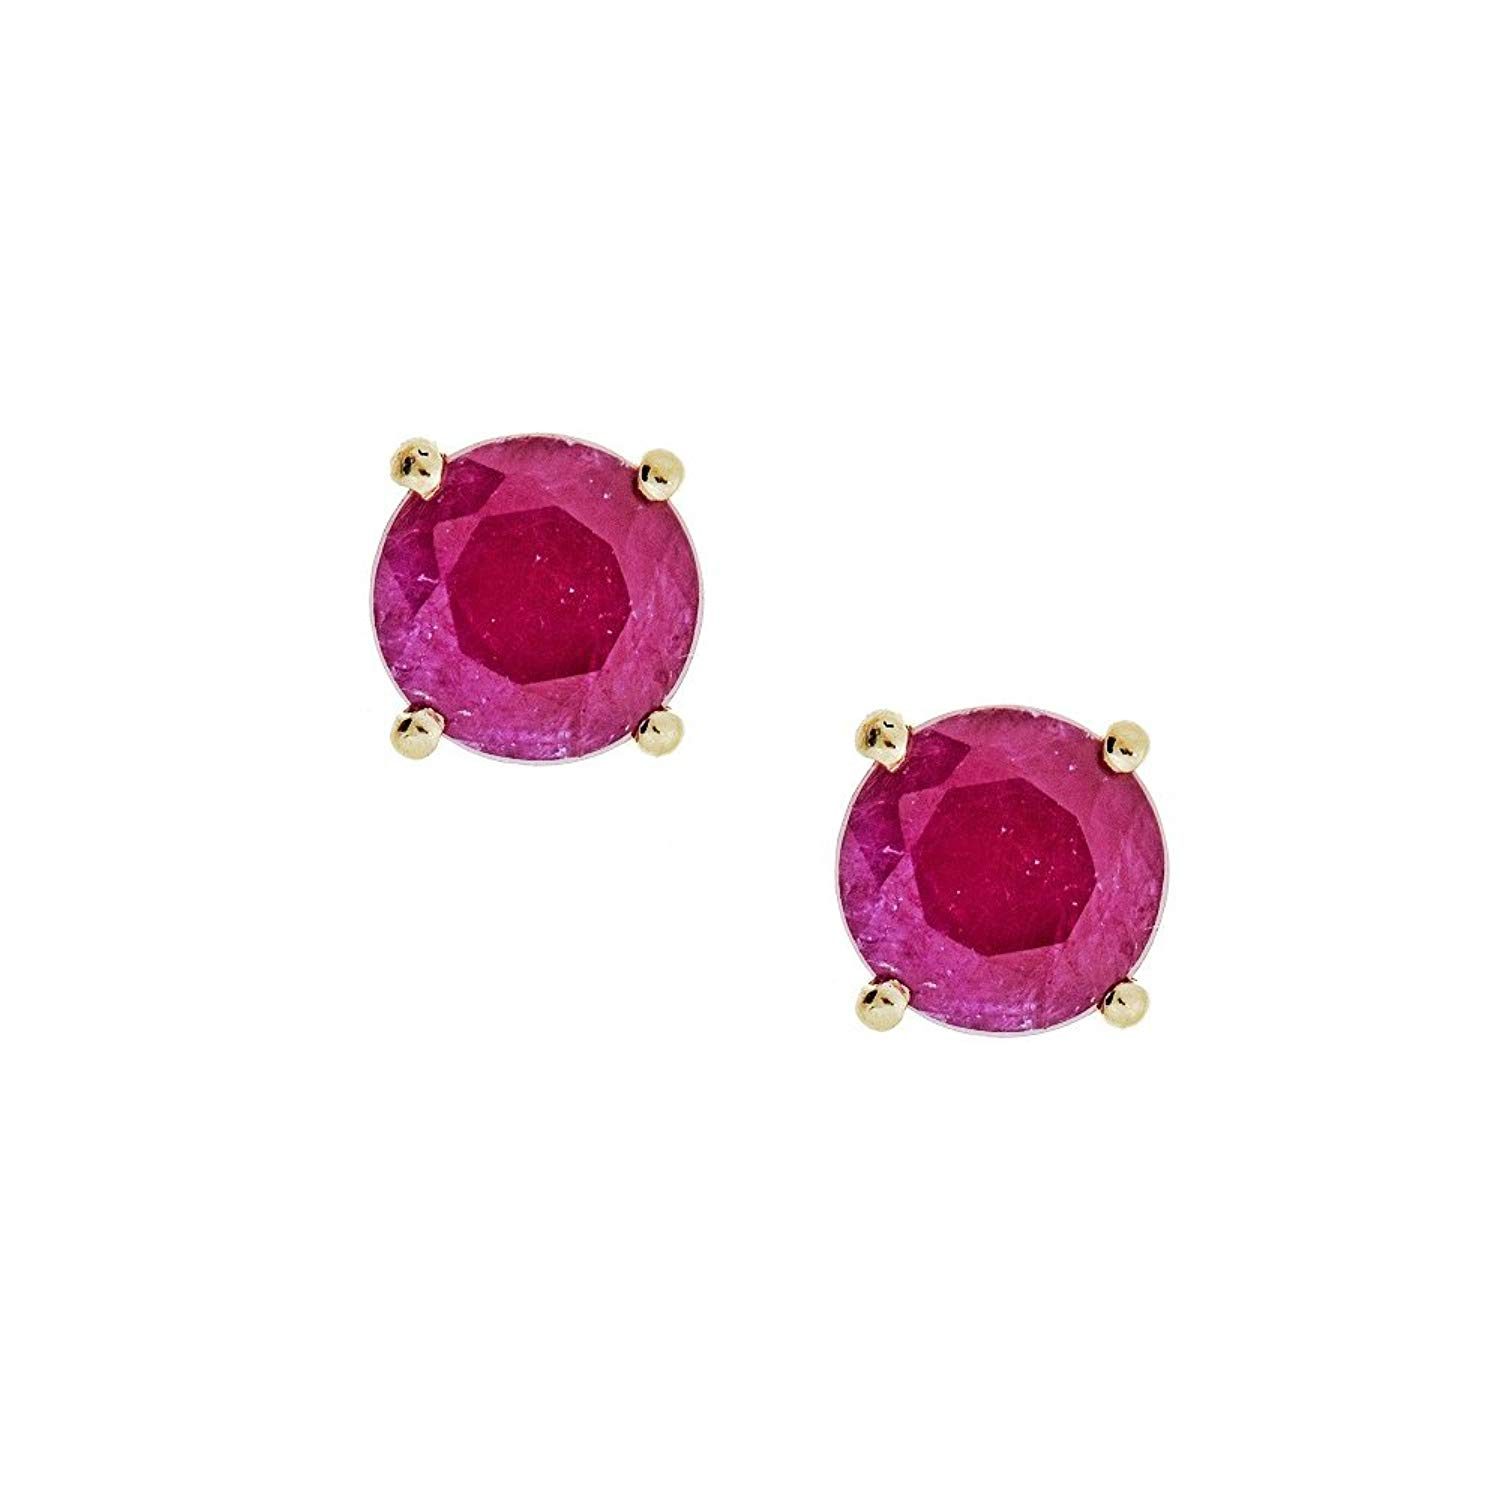 Get Quotations Gin And Grace 10k Yellow Gold Indian Ruby Stud Earrings For Women